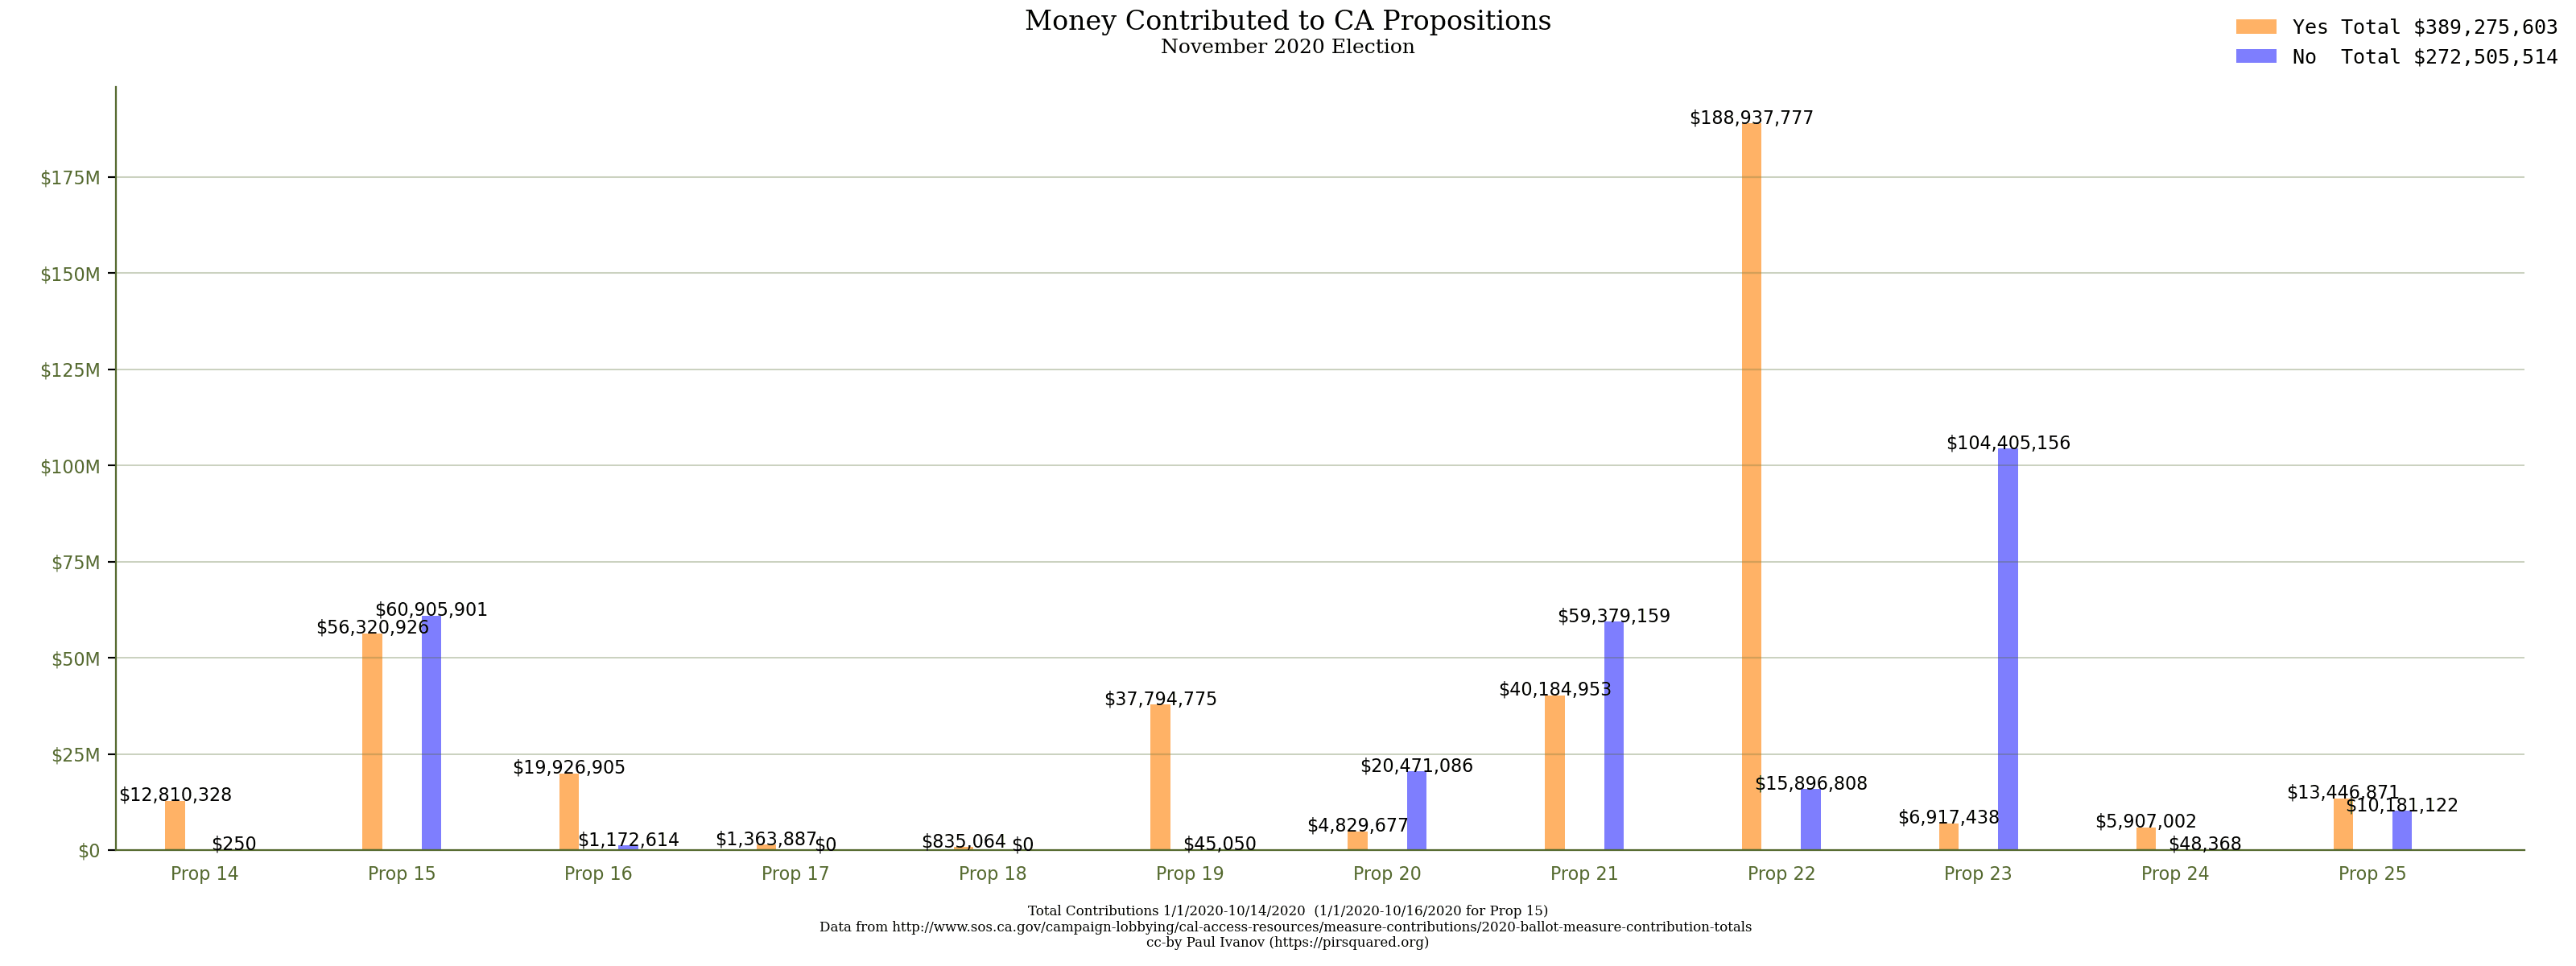 Money Raised for CA Propositions November 2020 Election shown with a common scale. Visualization by Paul Ivanov